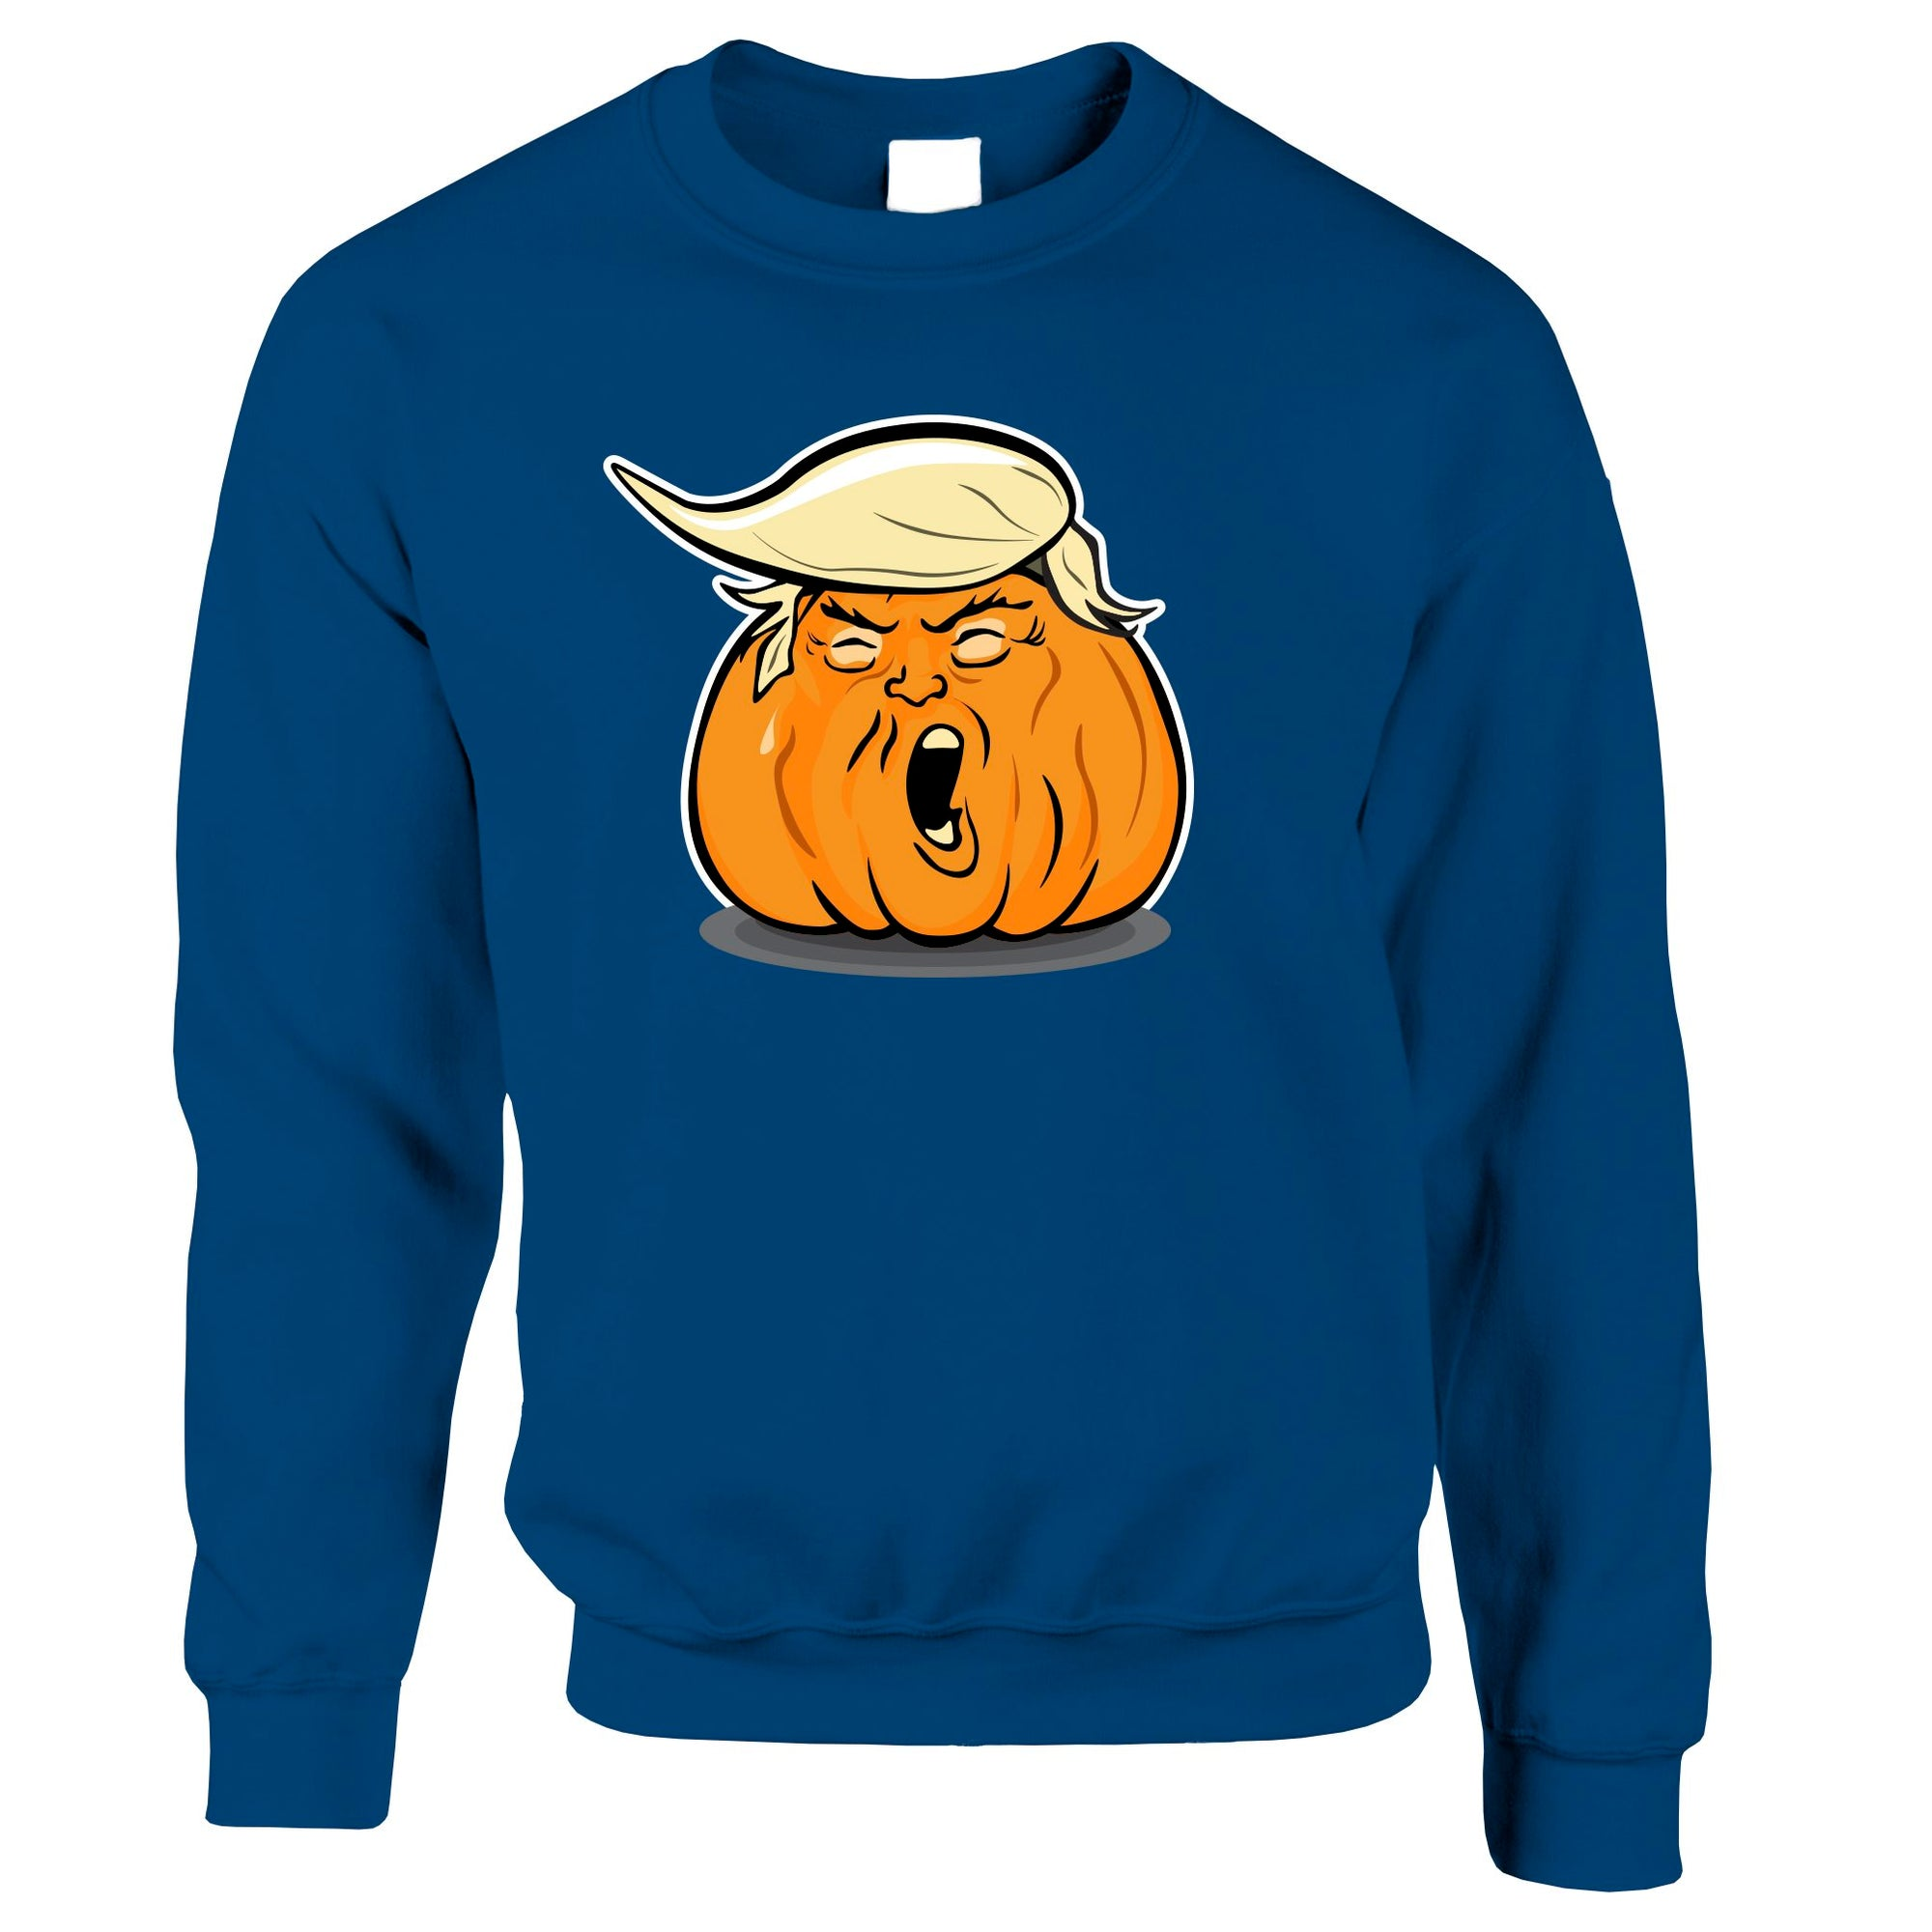 Donald Trump Jumper Haloween Trumpkin Joke Sweatshirt Sweater